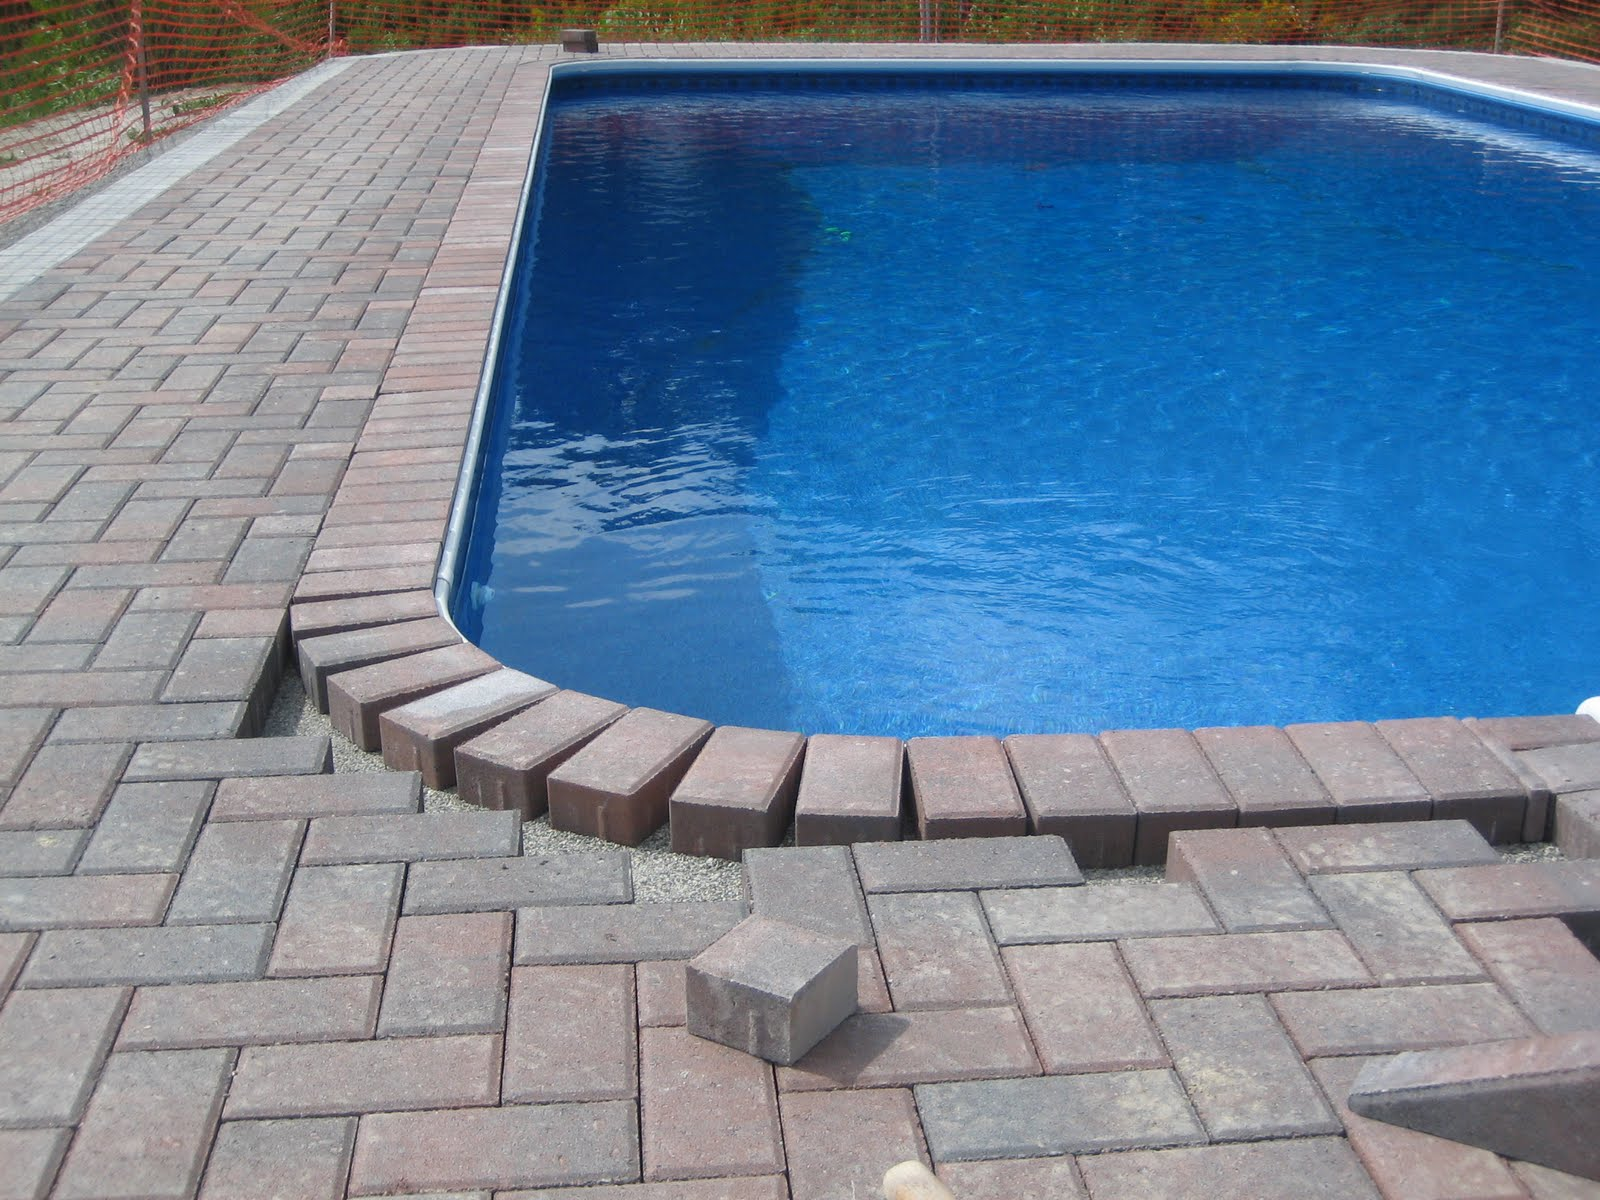 Pool surrounds gallery paving for africa for Swimming pool surrounds design